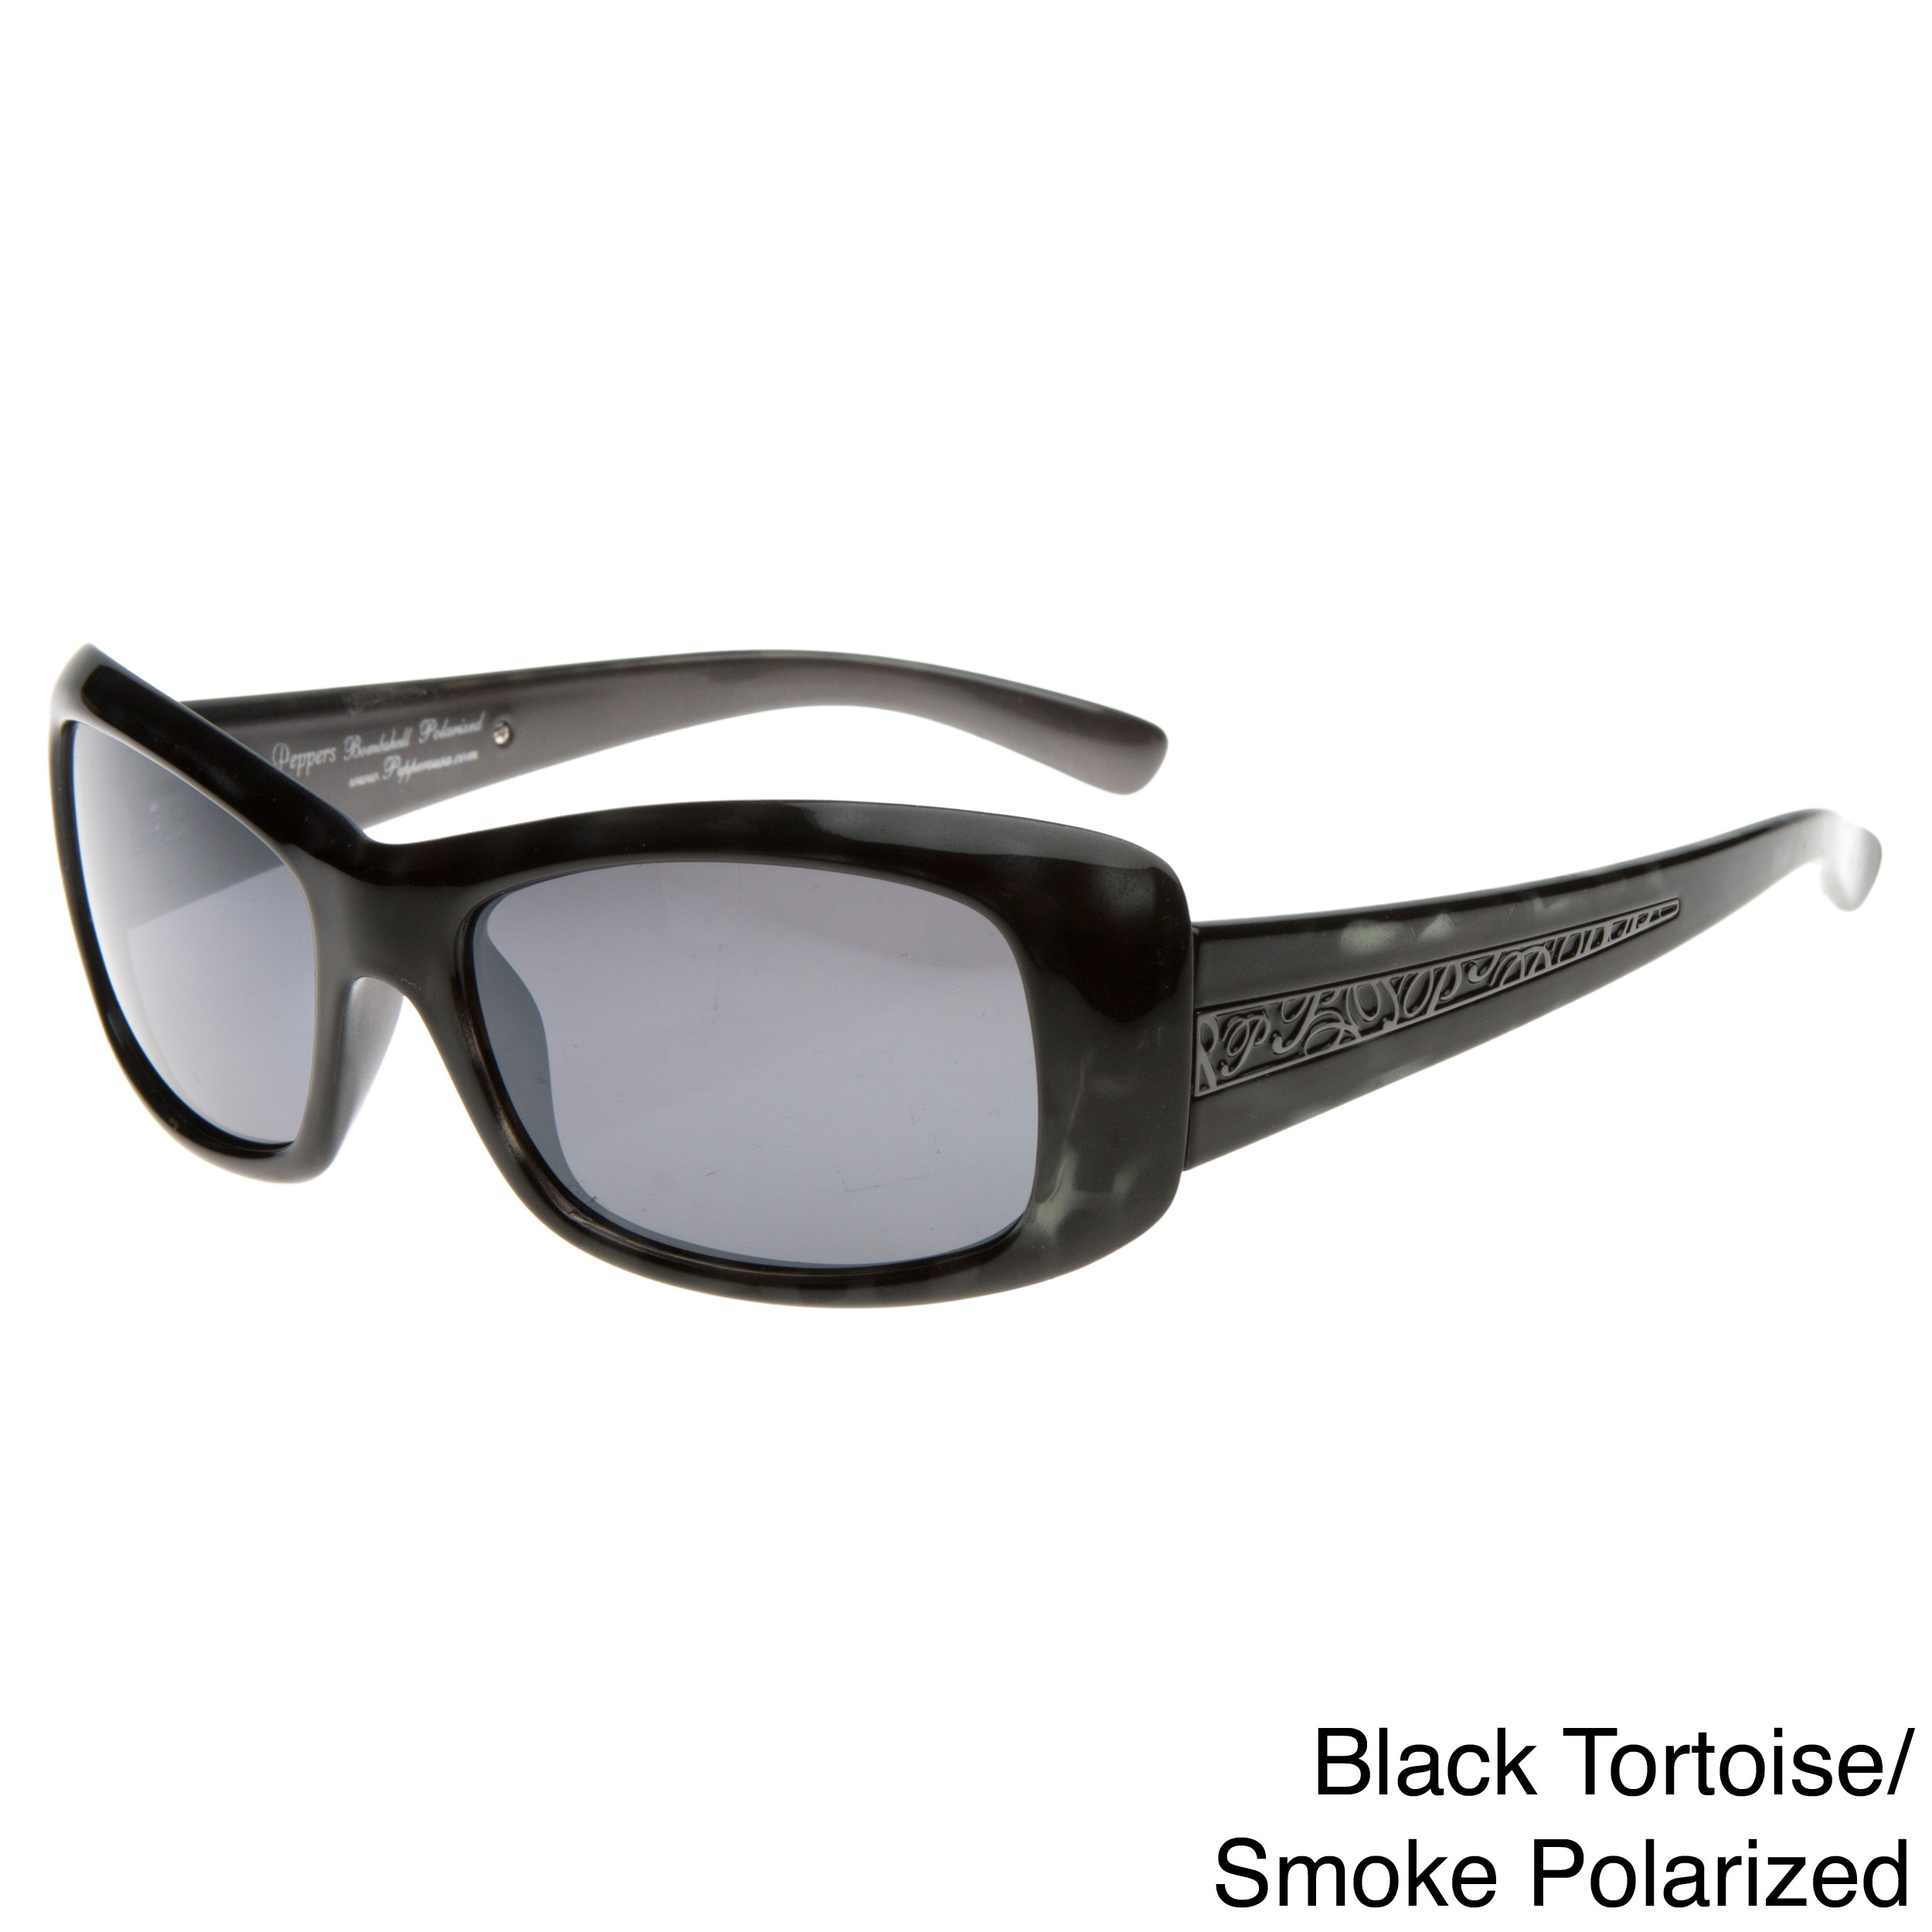 269973fc90 ray bans sunglasses overstock. Overstock Polarized Sunglasses